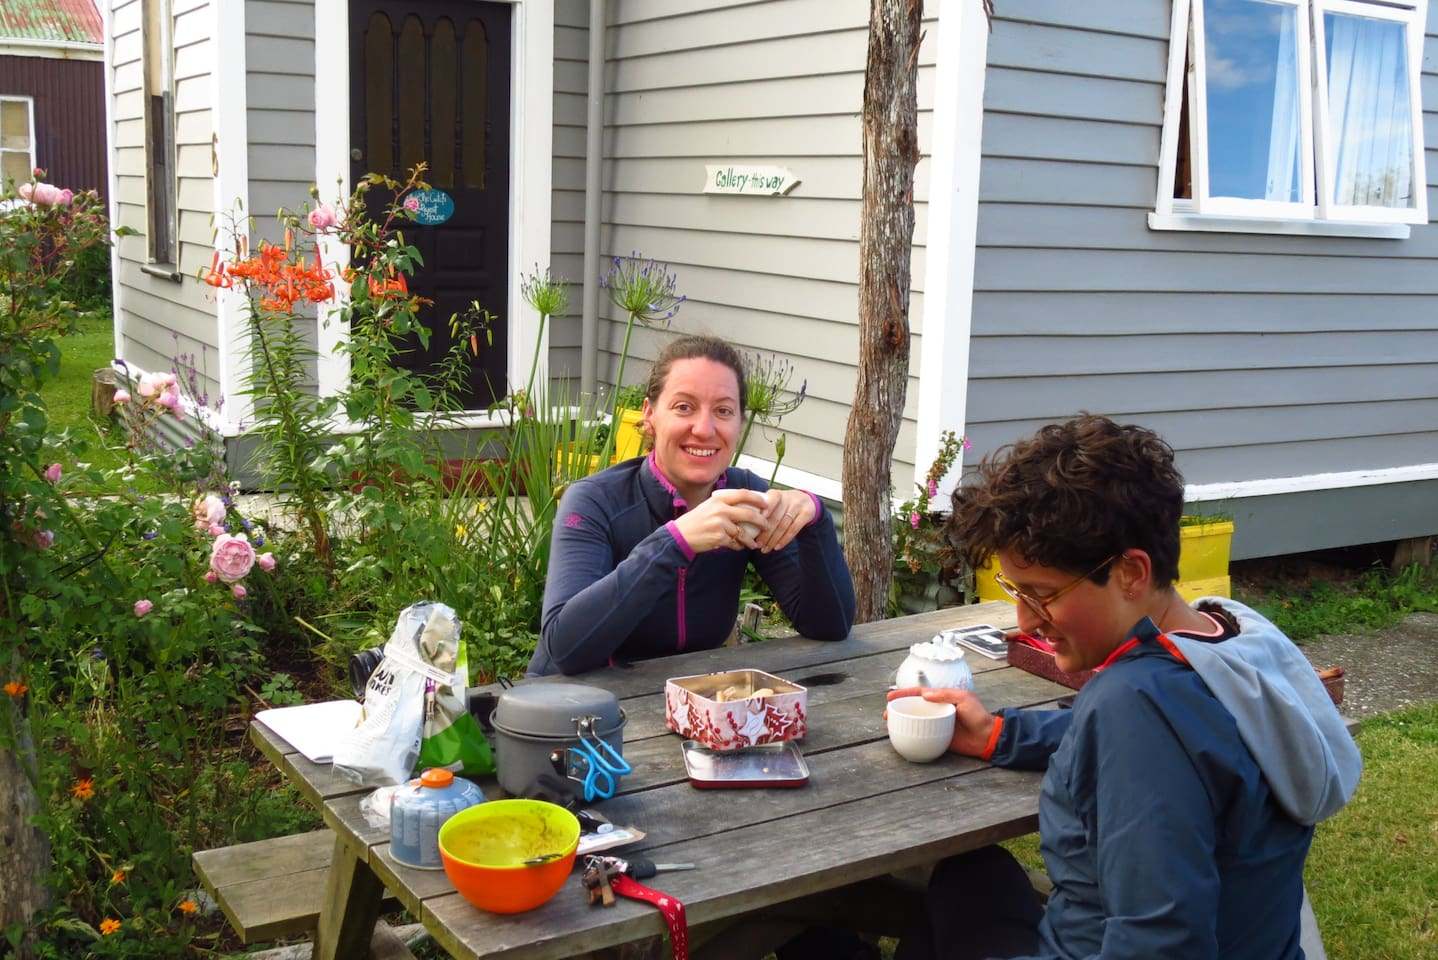 Guests enjoying a hikers breakfast outside the CWTCH.